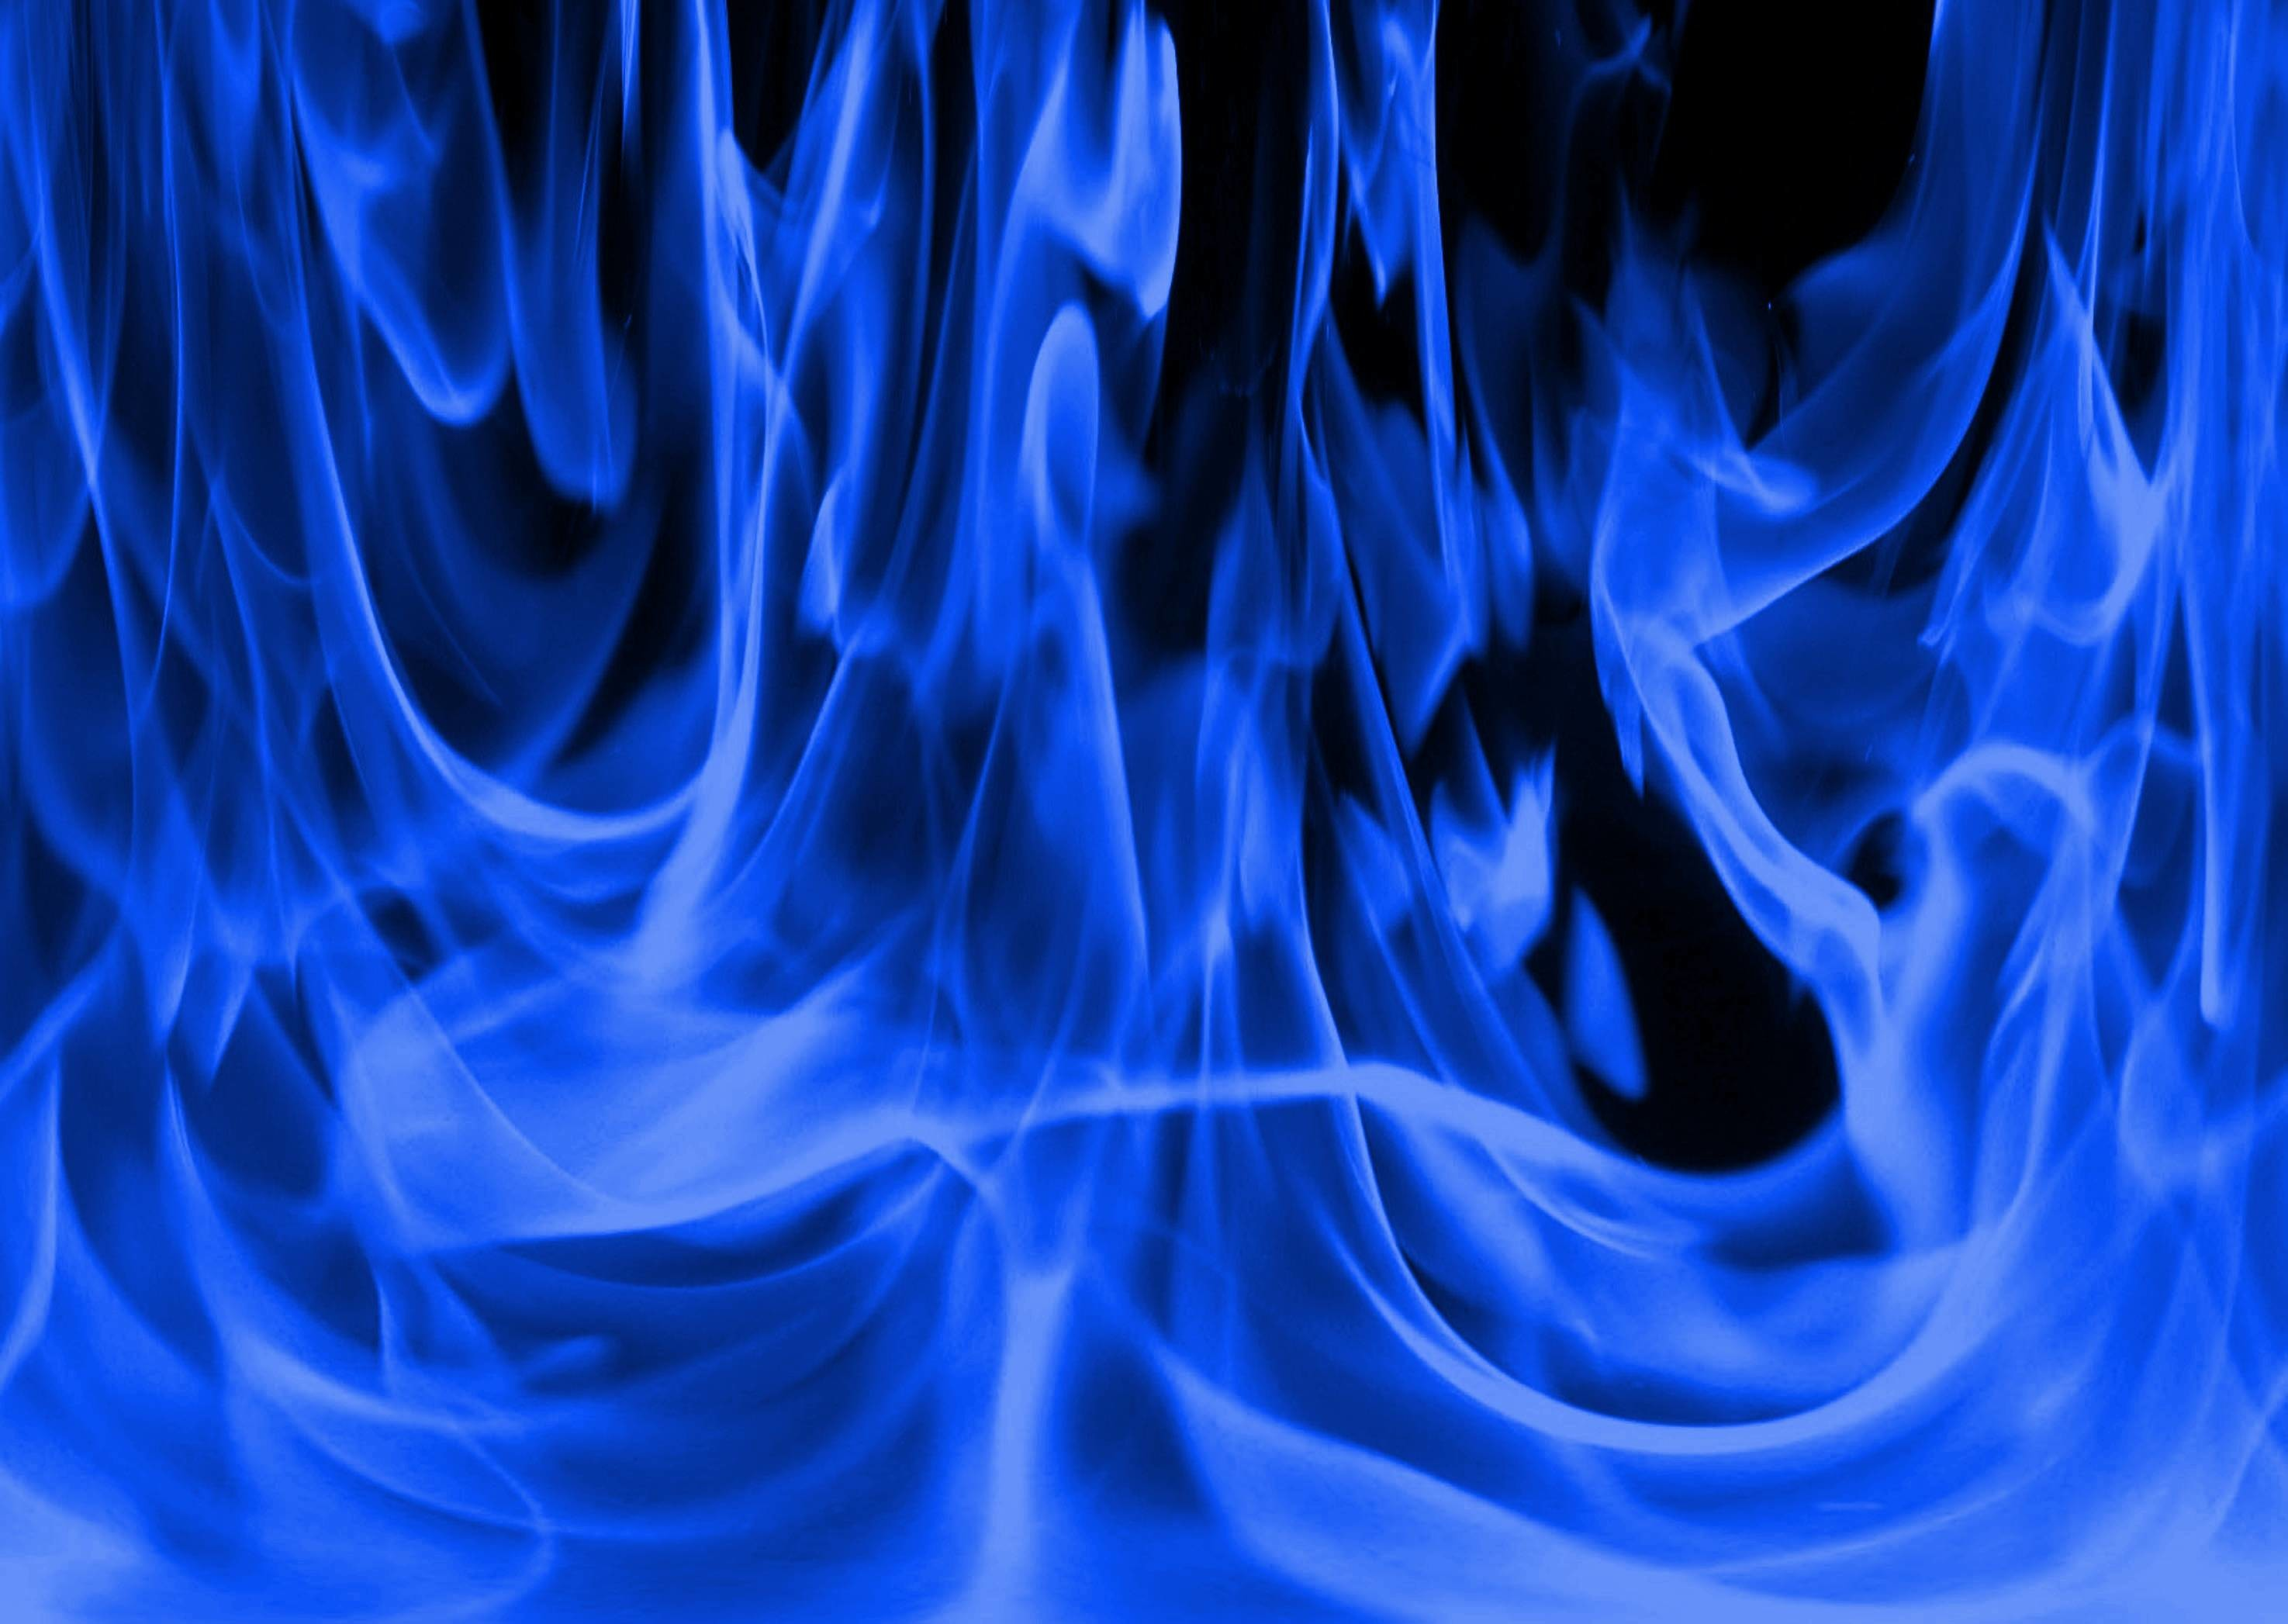 Blue And Red Fire Flames – Viewing Gallery